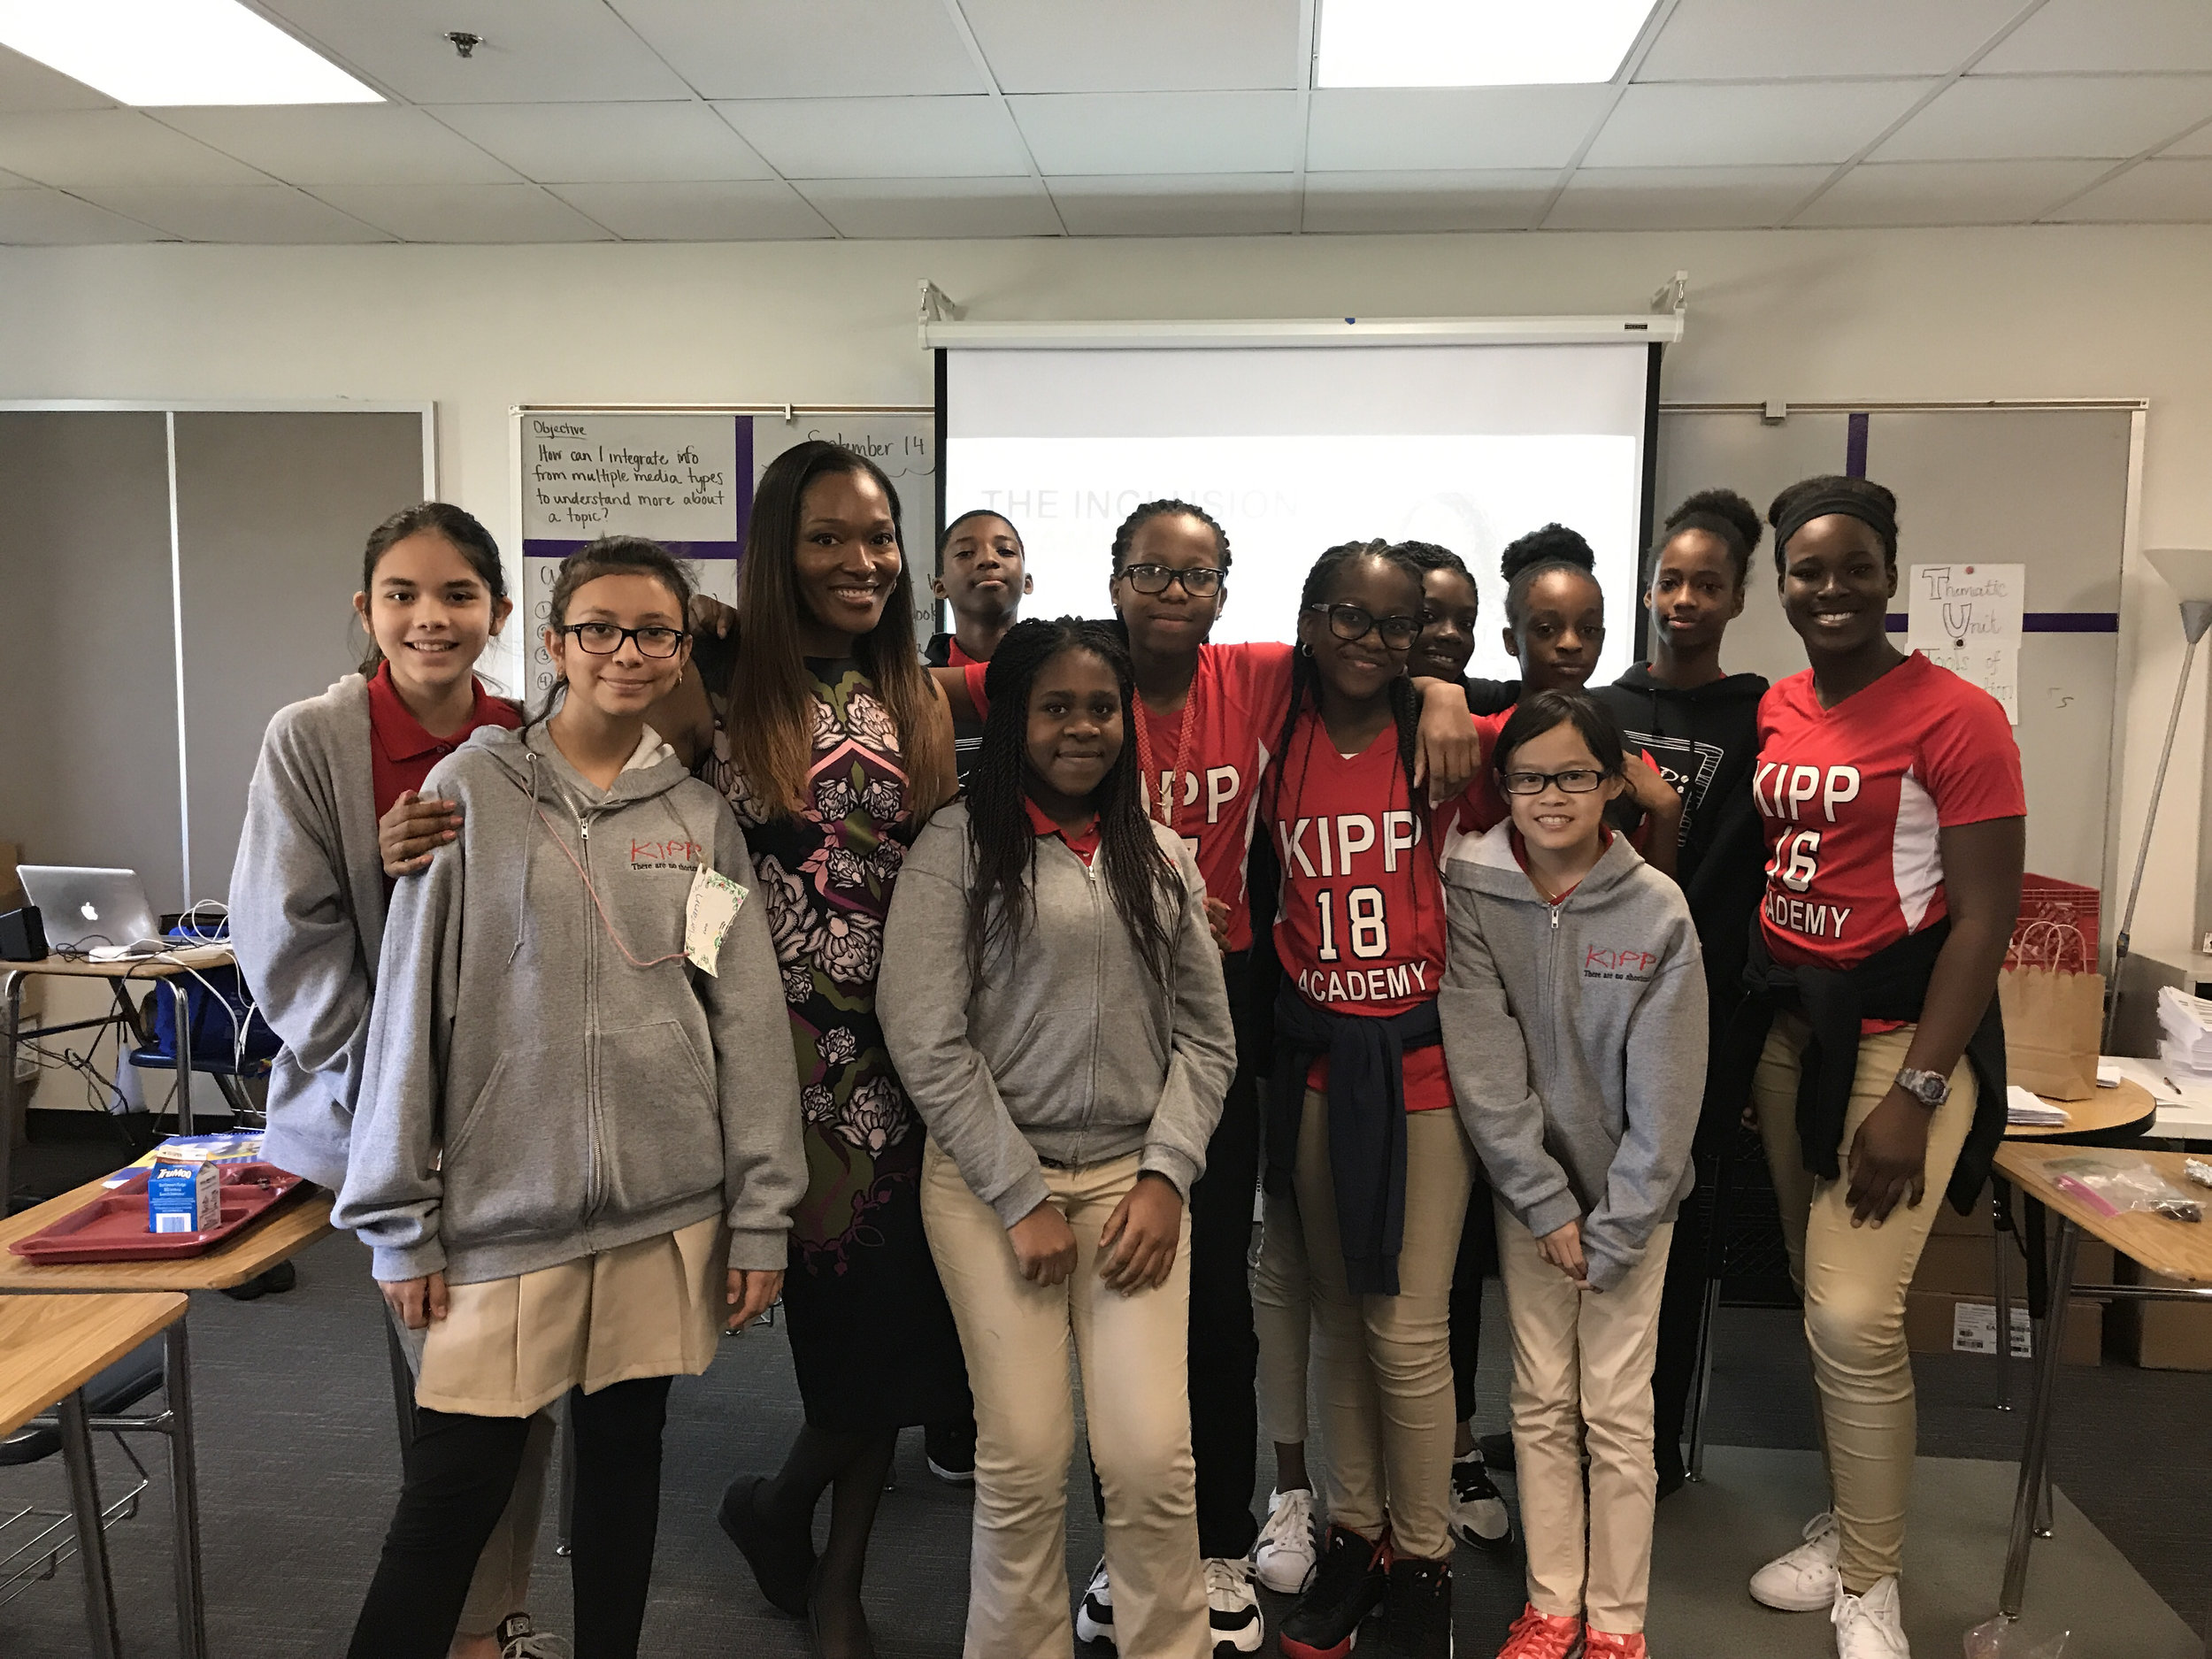 Adeola Aduwole, Direction of Learning and Organizational Development at the National Diversity Council - 7th Grade / Diversity & Biodiversity